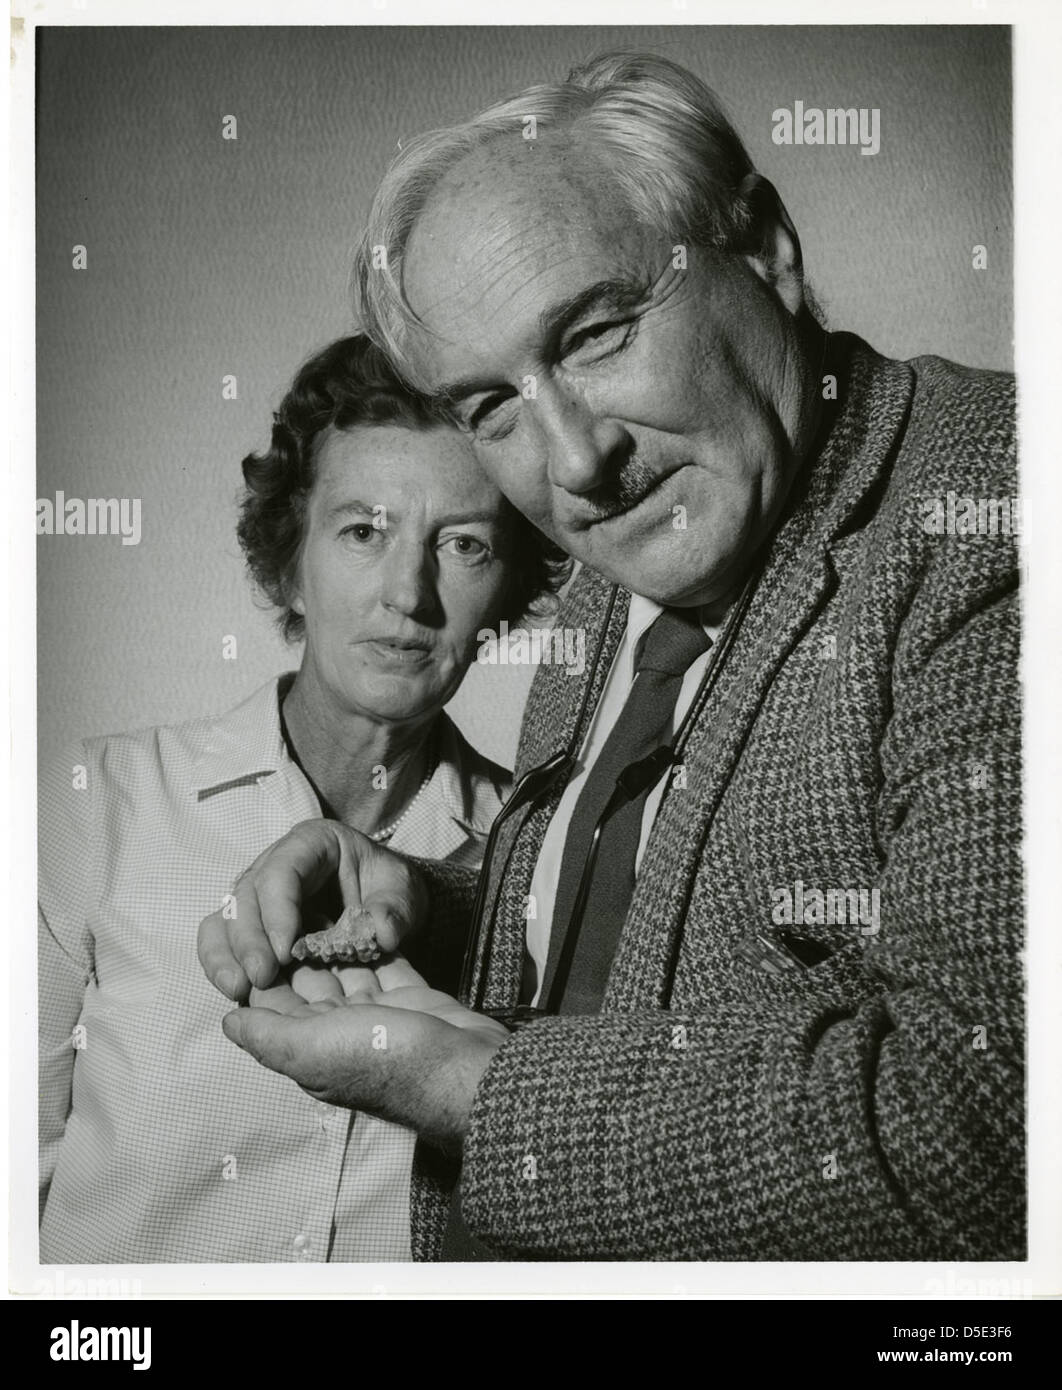 (left to right): Mary Douglas Nicol Leakey (1913-1996) and her husband Louis Seymour Bazett Leakey (1903-1972) - Stock Image